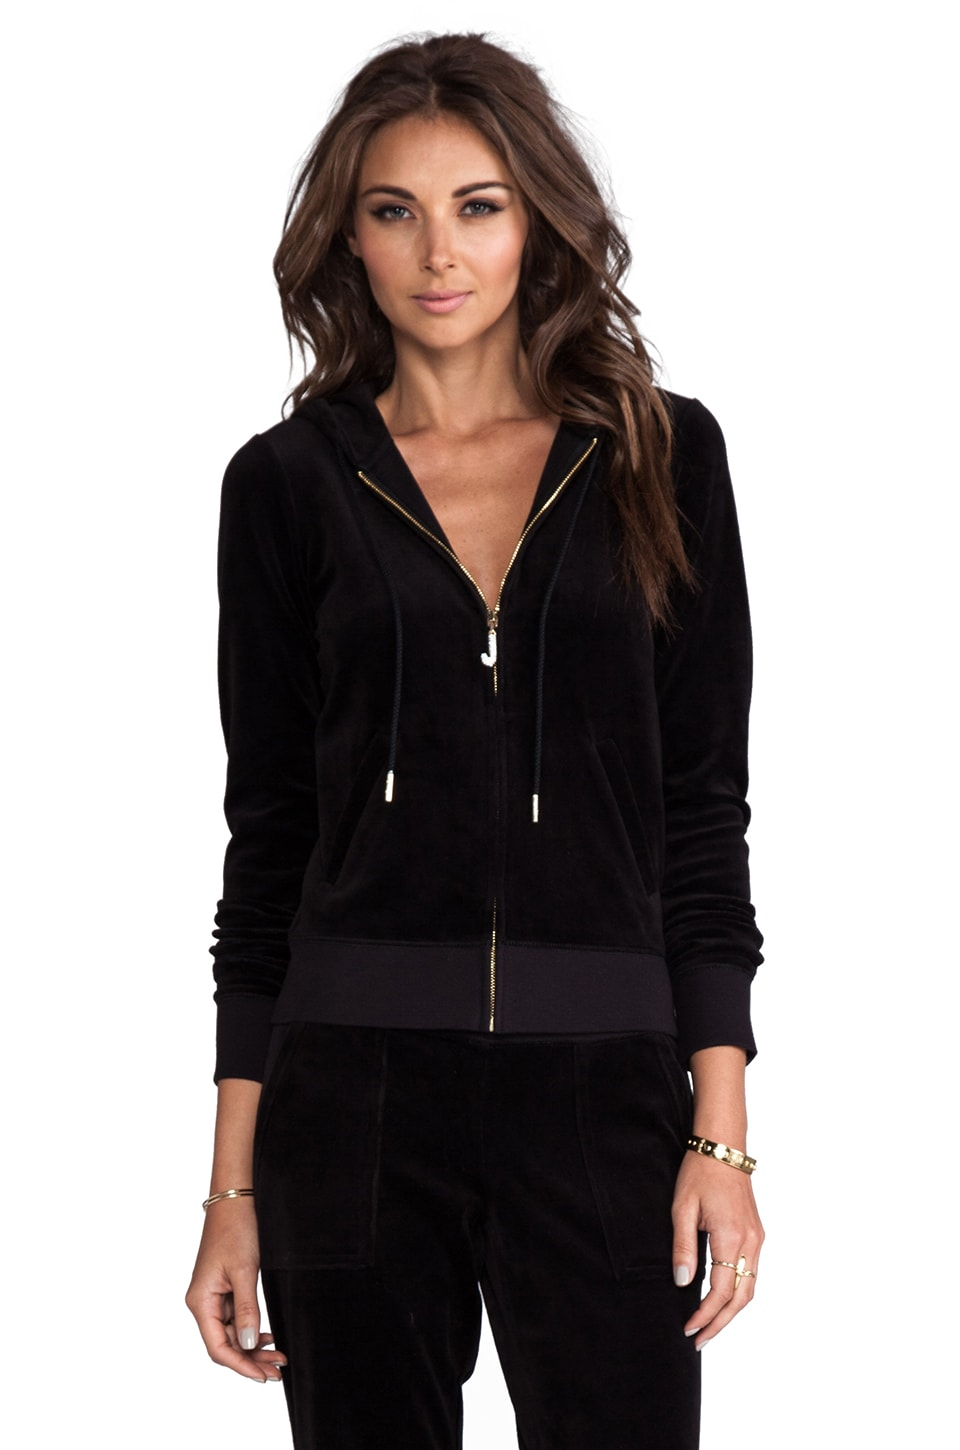 Juicy Couture J Bling Hoodie in Black